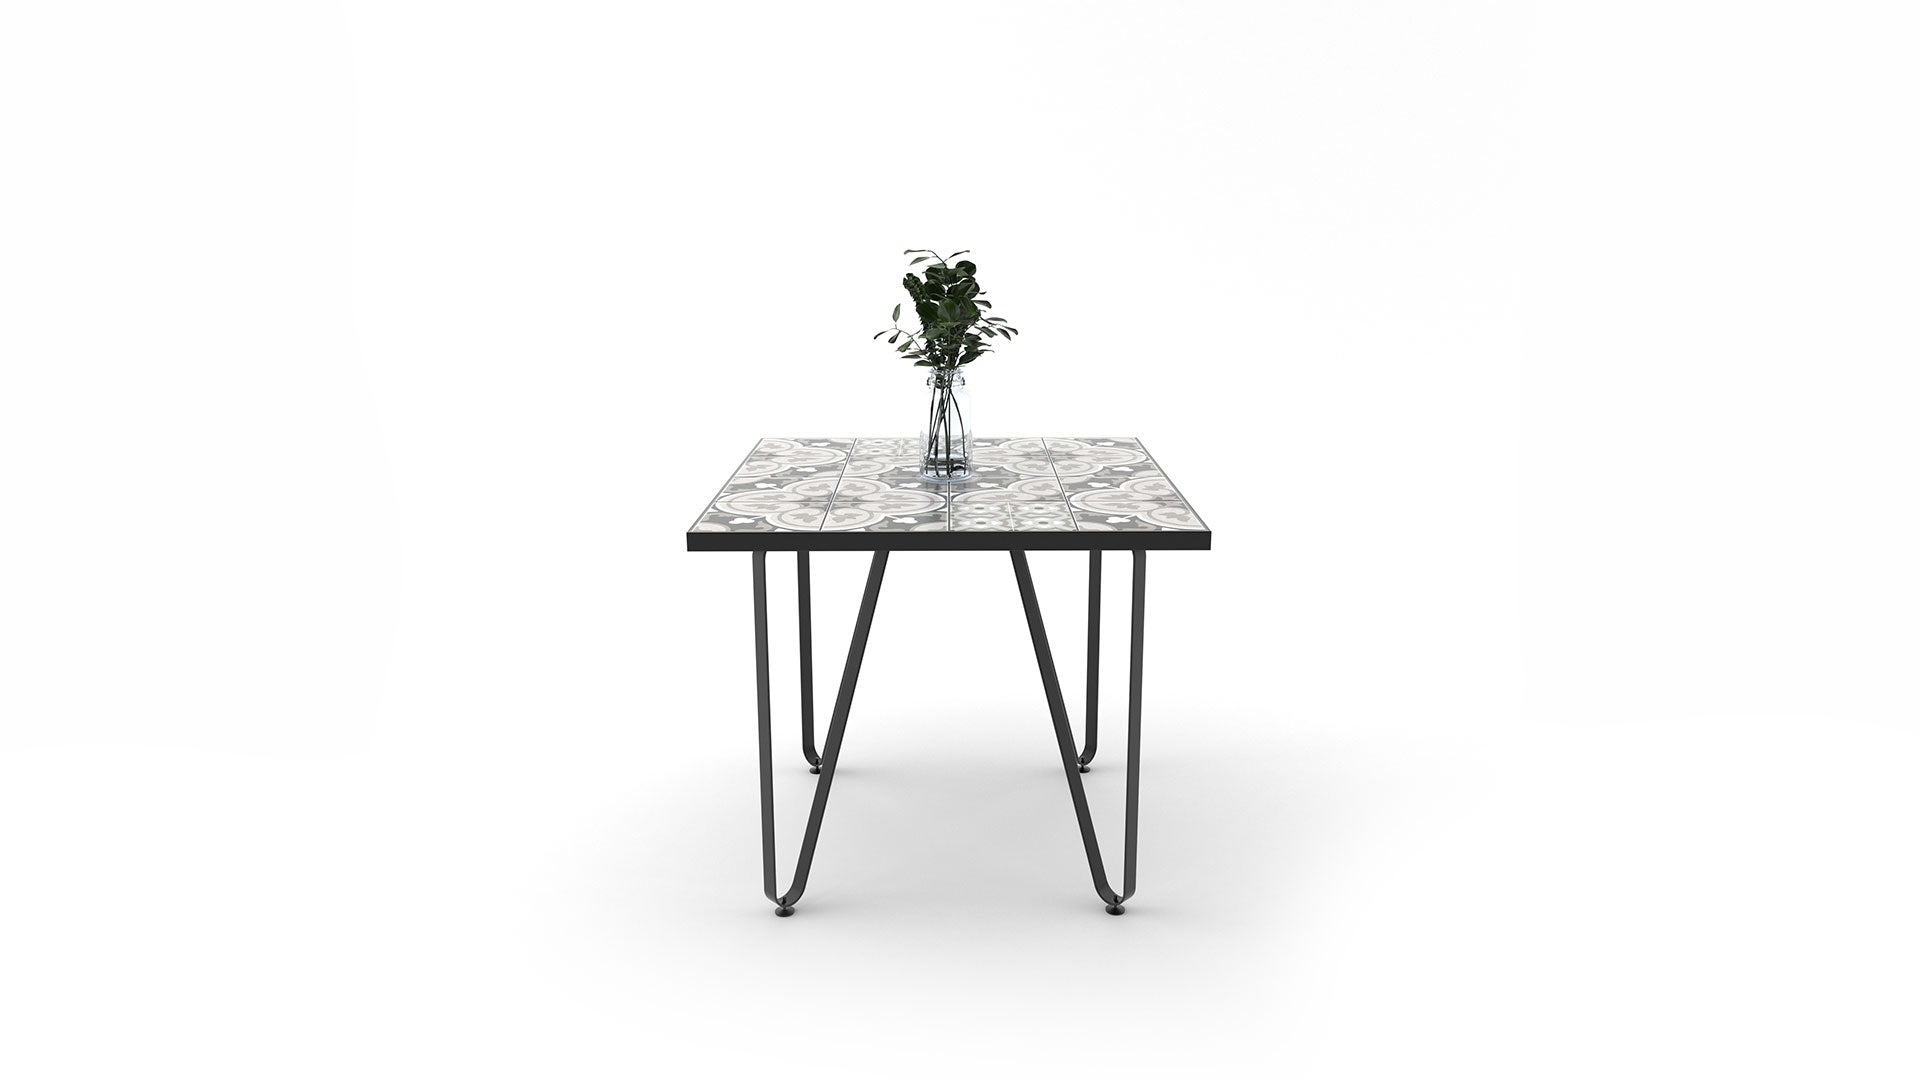 Ceramic tile table with black legs and italian tiles - Annalisa